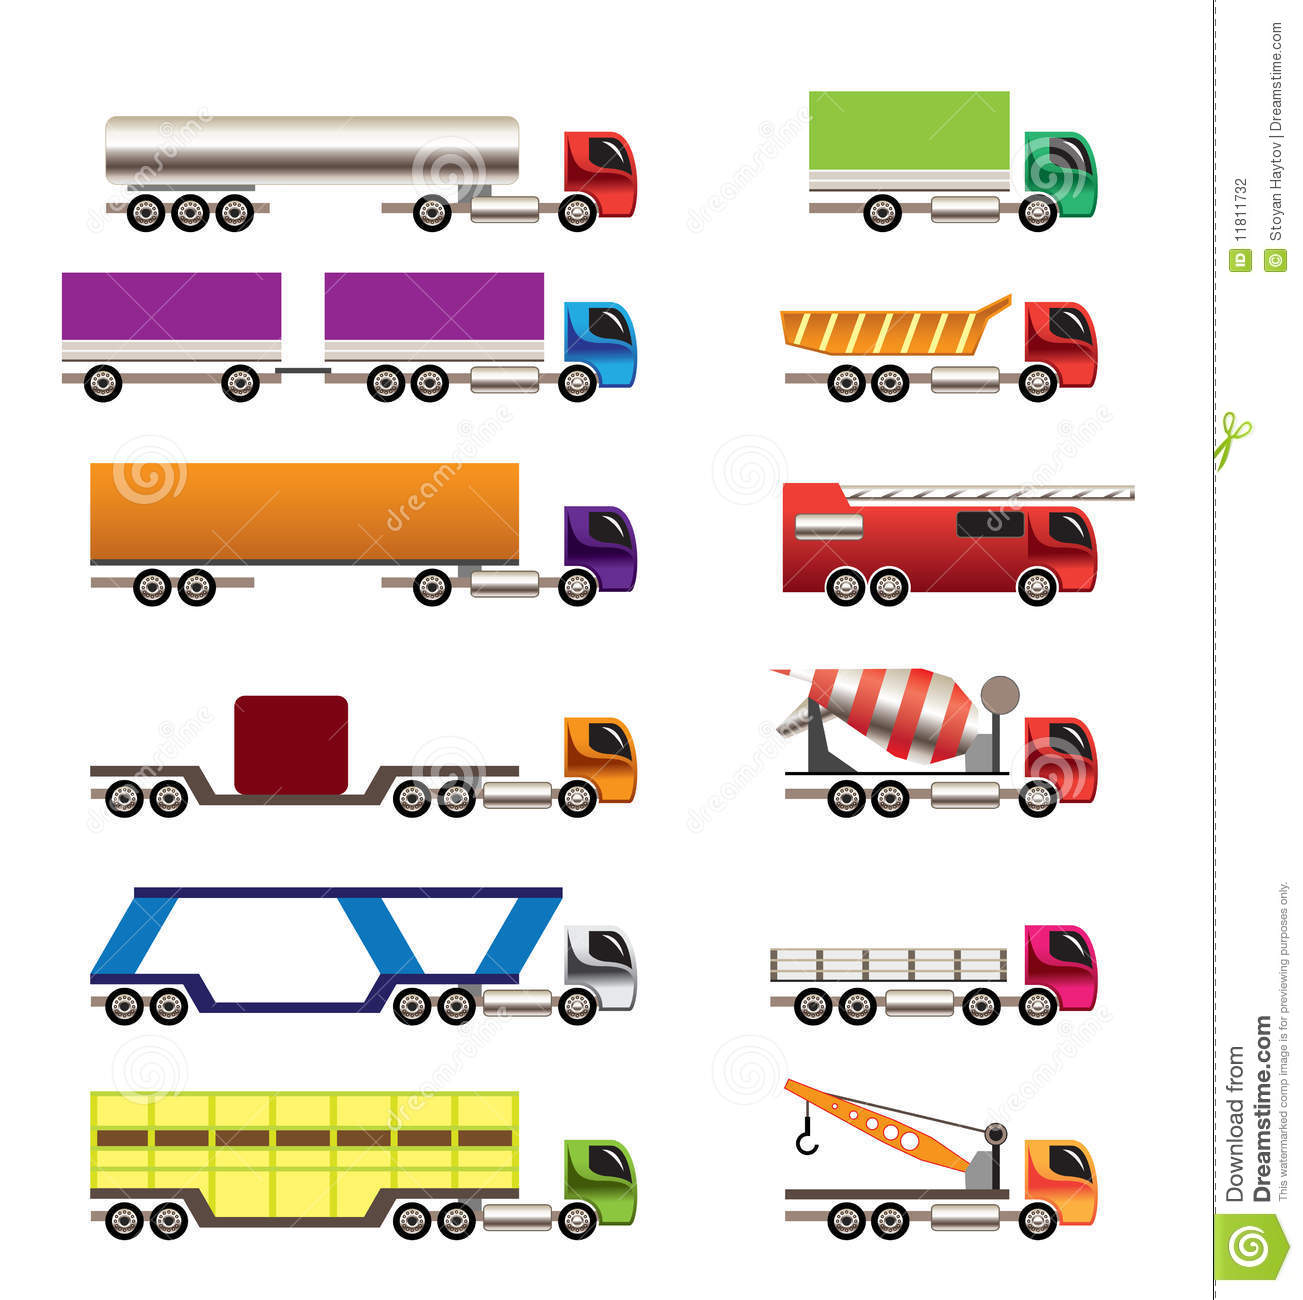 7 Way Wiring Diagram Trailer Wiring Diagram Collection Koreasee   7 Way Wiring Diagram Trailer Free Download Top 10 Of Instruction Plug Connector Round Semi further Topic19524 as well Wiring Guides in addition bokit as well Showthread. on trailer breakaway wiring diagram